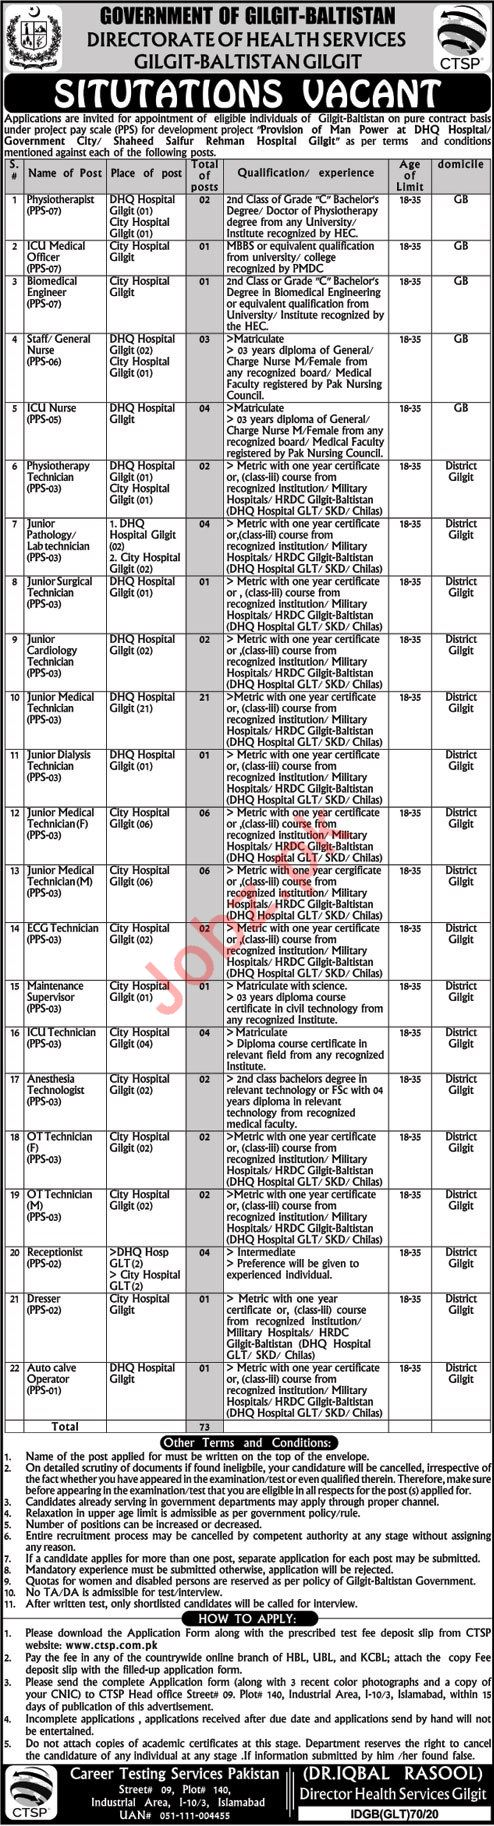 Medical Staff Jobs in Directorate of Health Services Gilgit